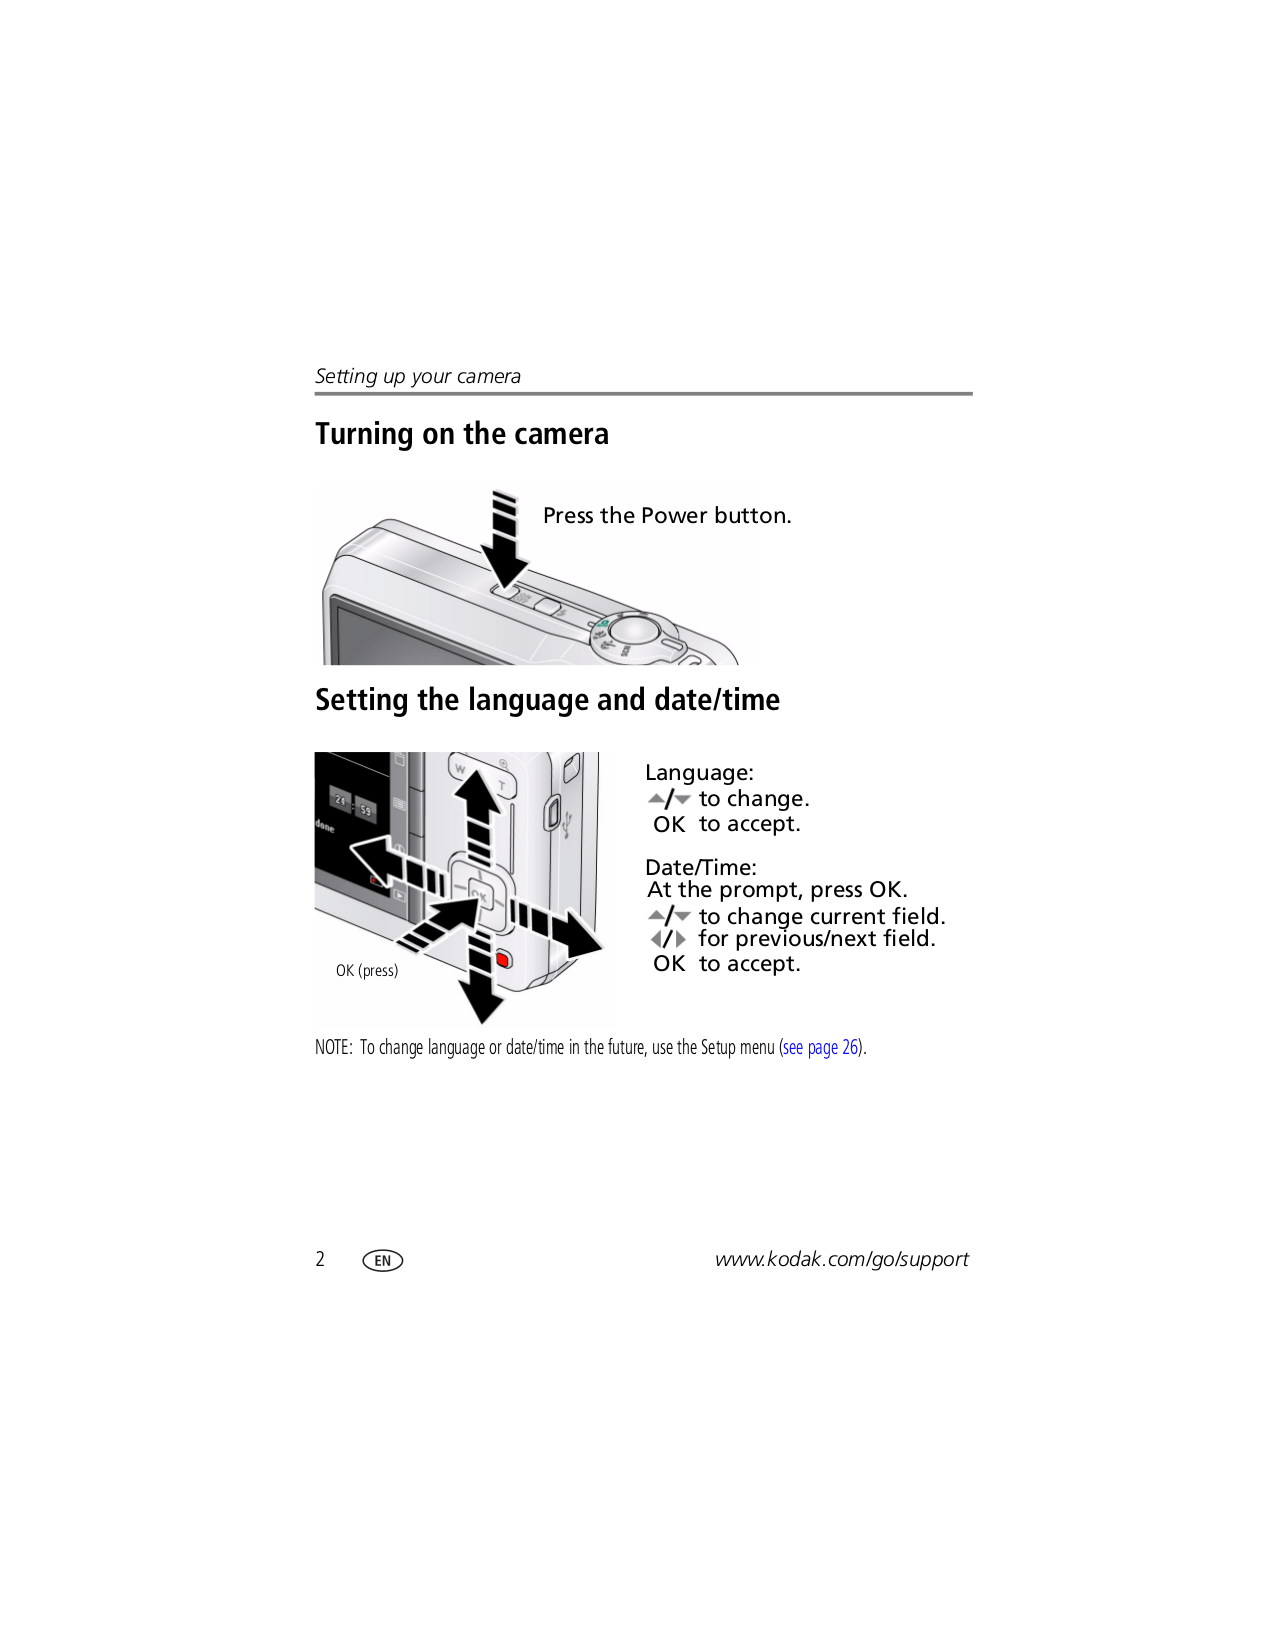 PDF manual for Kodak Digital Camera EasyShare M200